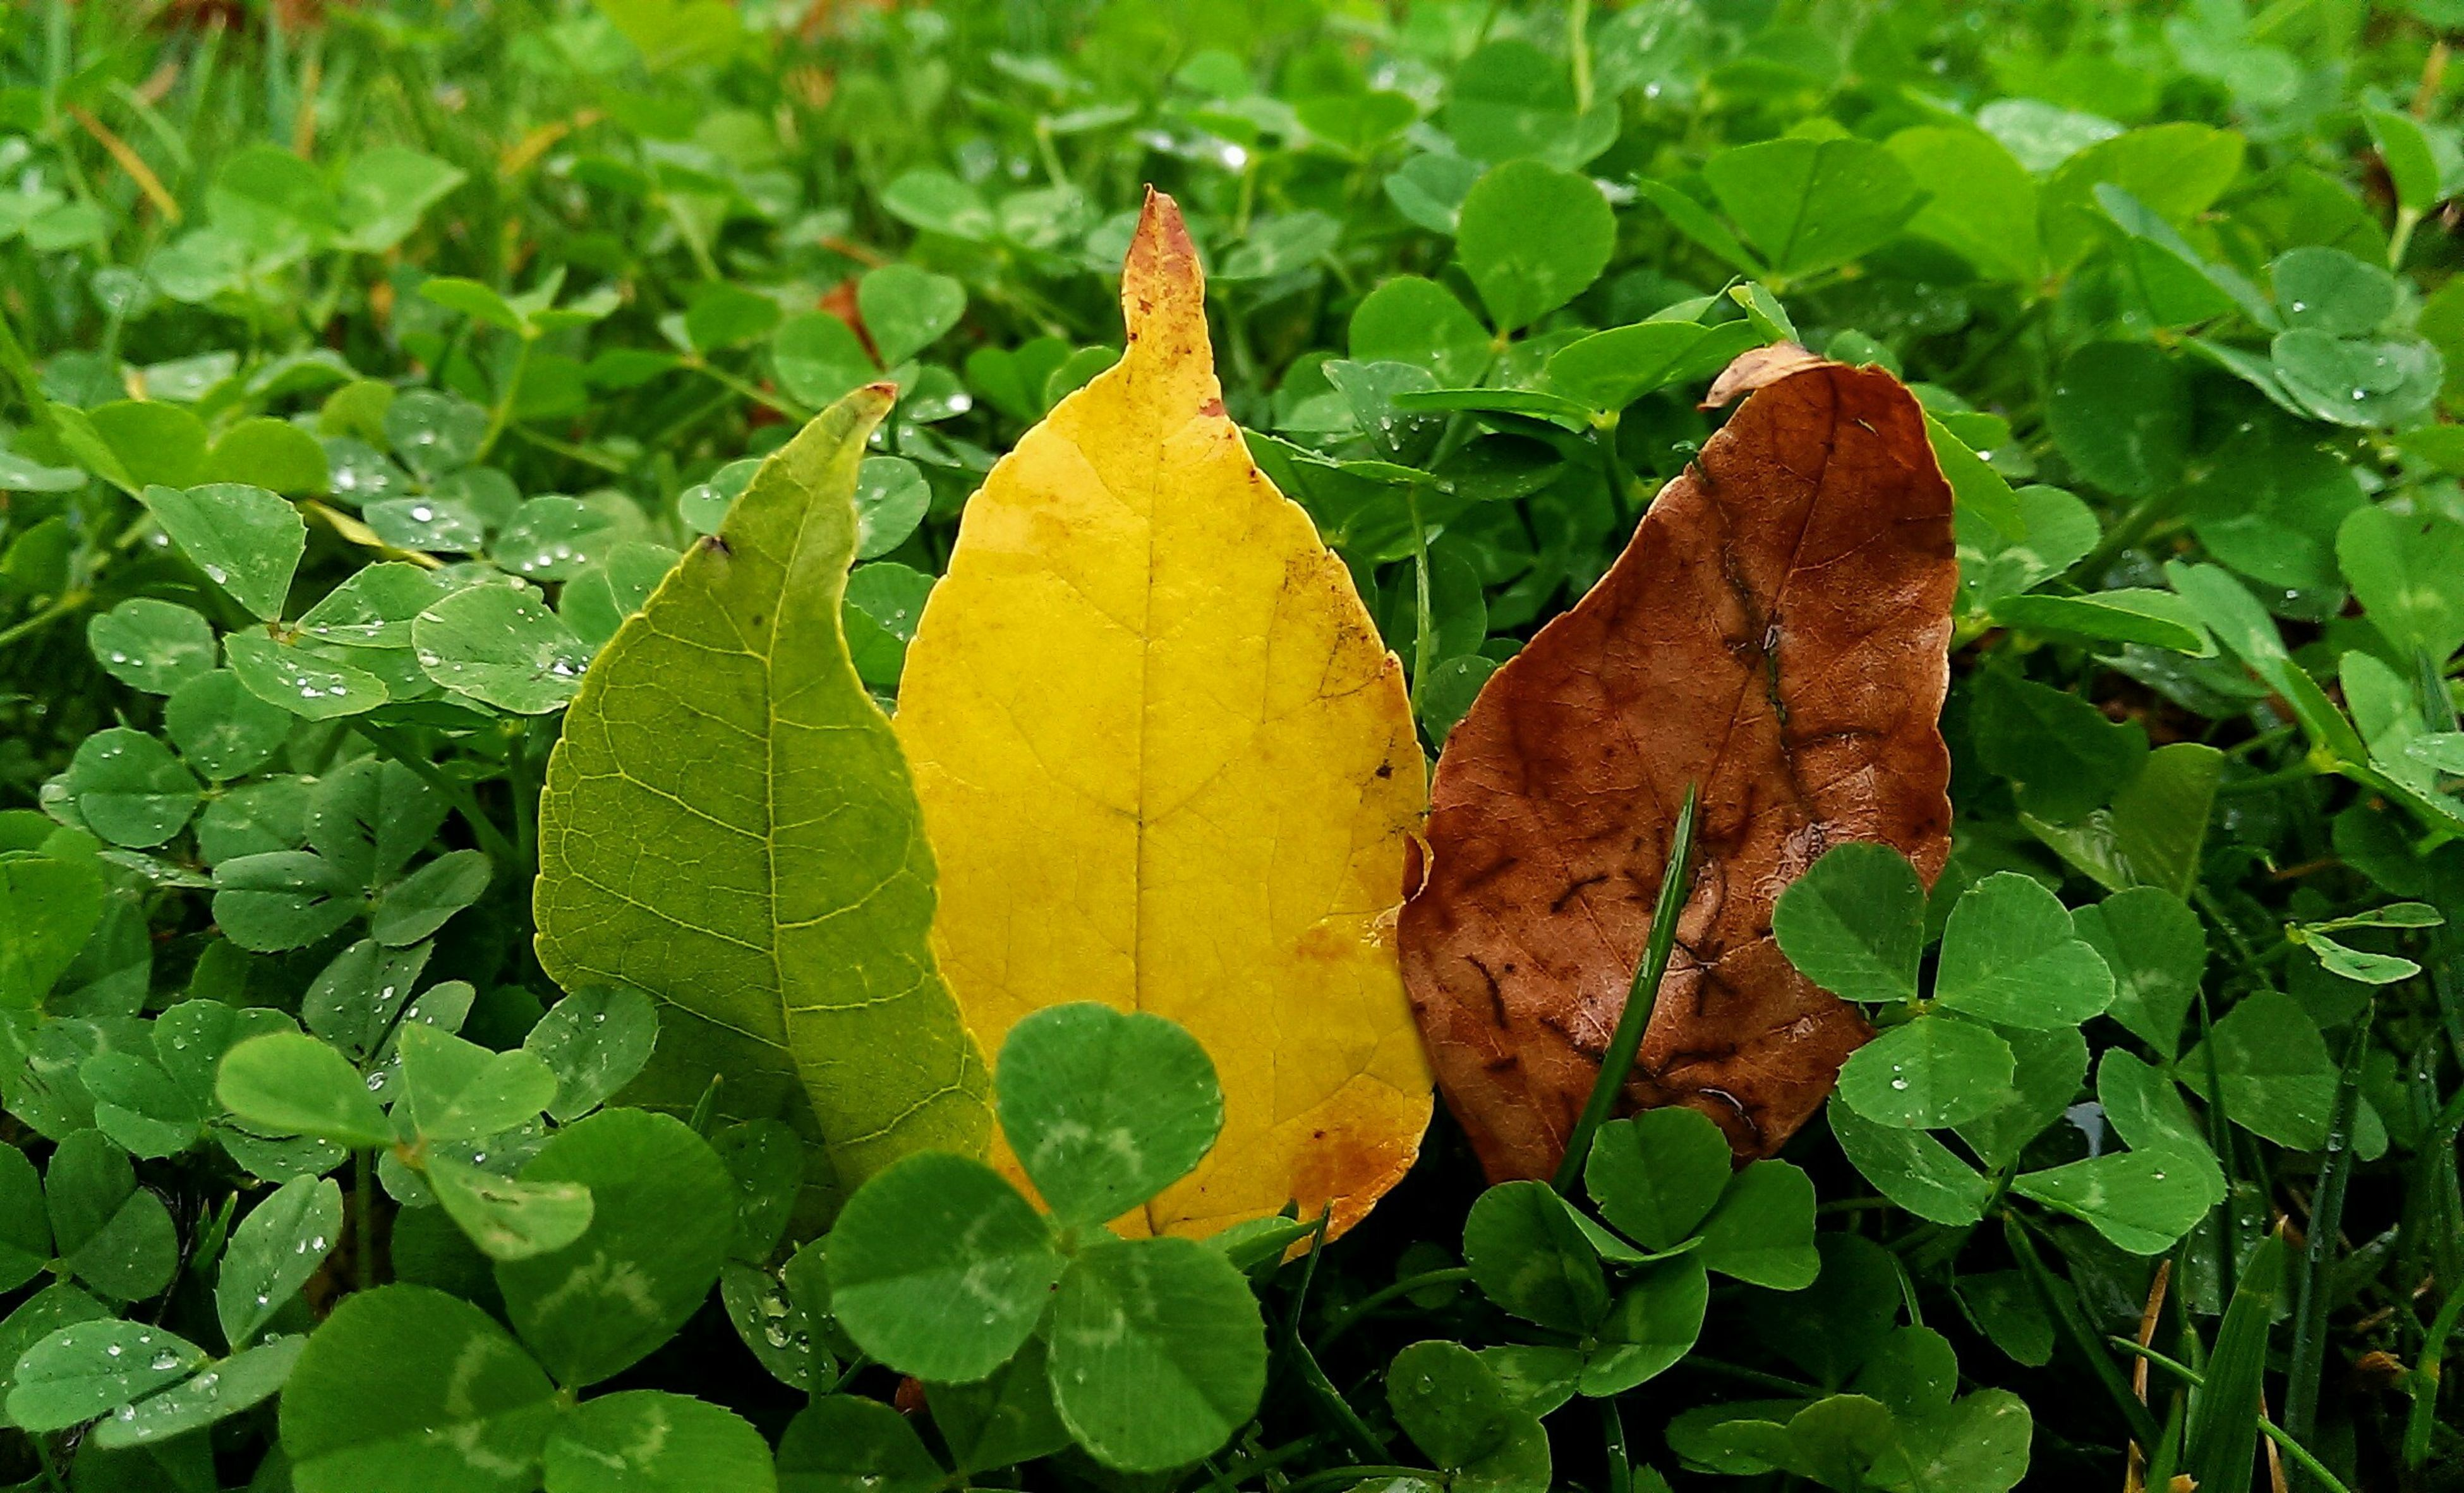 leaf, leaf vein, green color, close-up, natural pattern, growth, nature, leaves, plant, autumn, beauty in nature, yellow, change, tranquility, fragility, high angle view, season, day, focus on foreground, no people